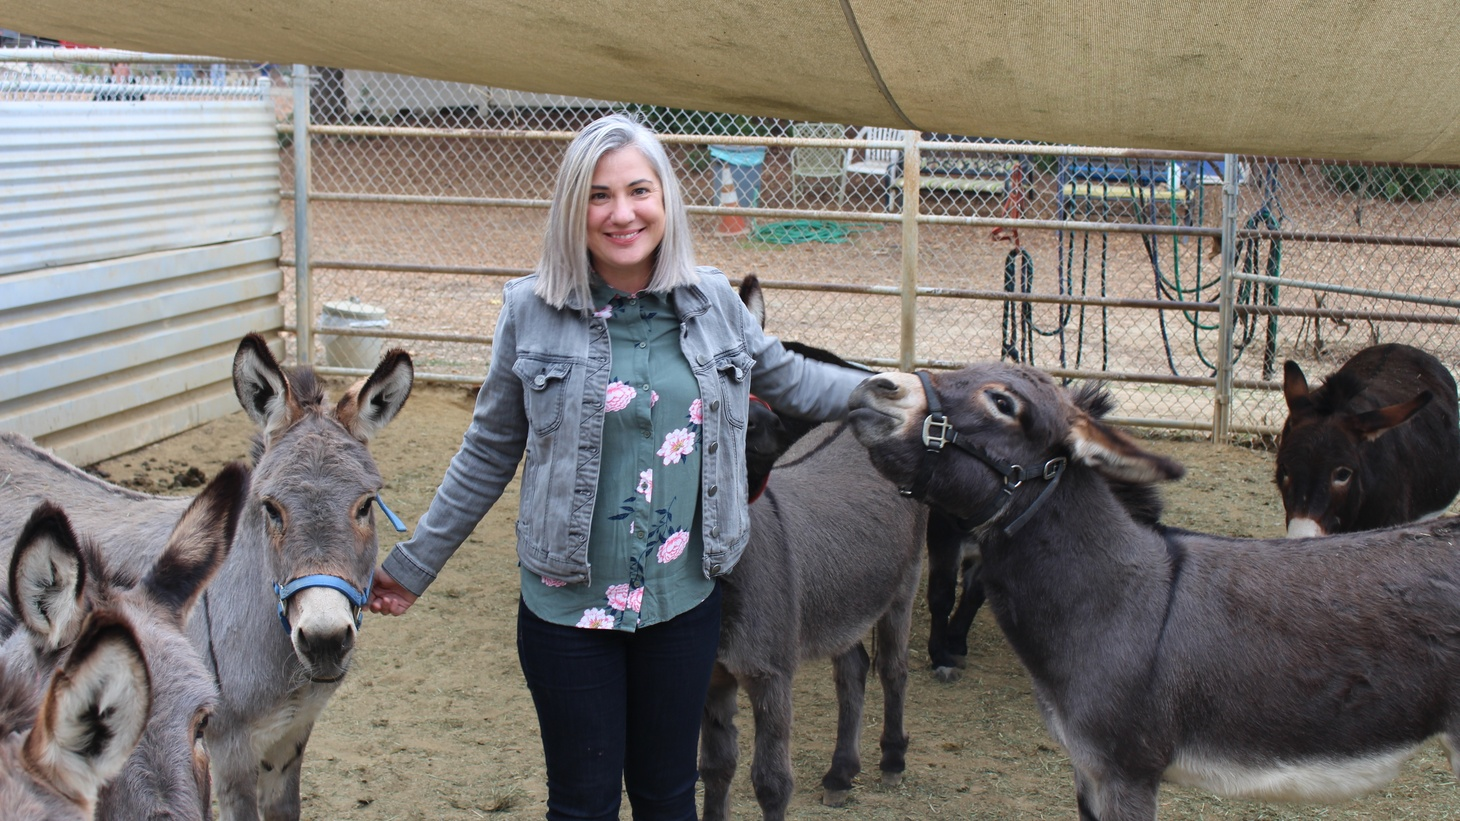 Franki Williams with donkeys evacuated from Malibu.